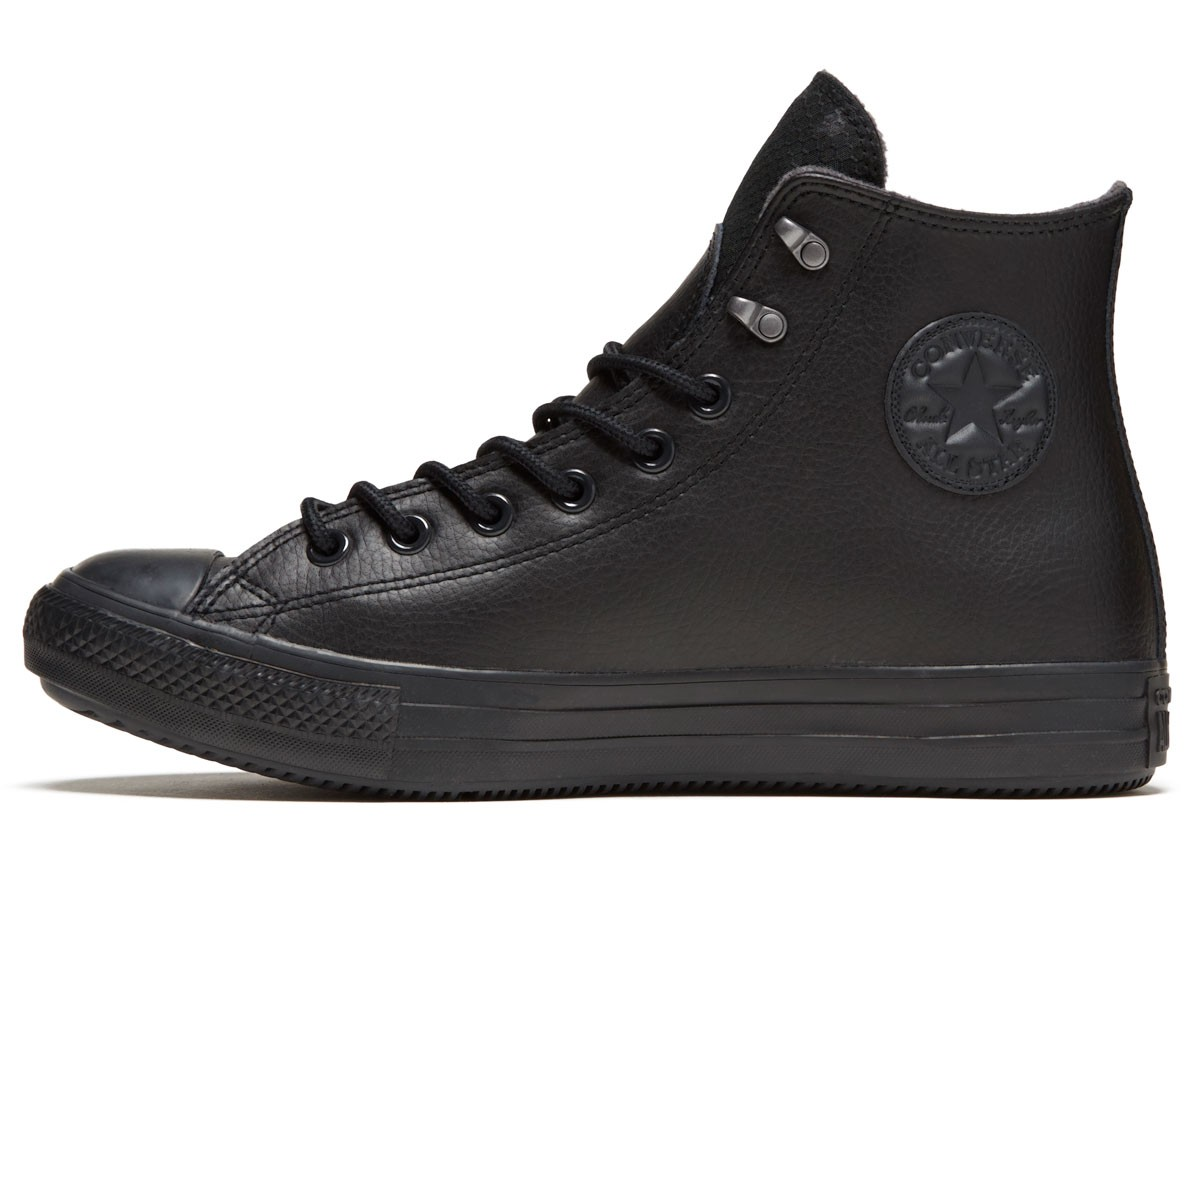 CONVERSE Sneaker 'CHUCK TAYLOR ALL STAR WINTER FIRST STEPS